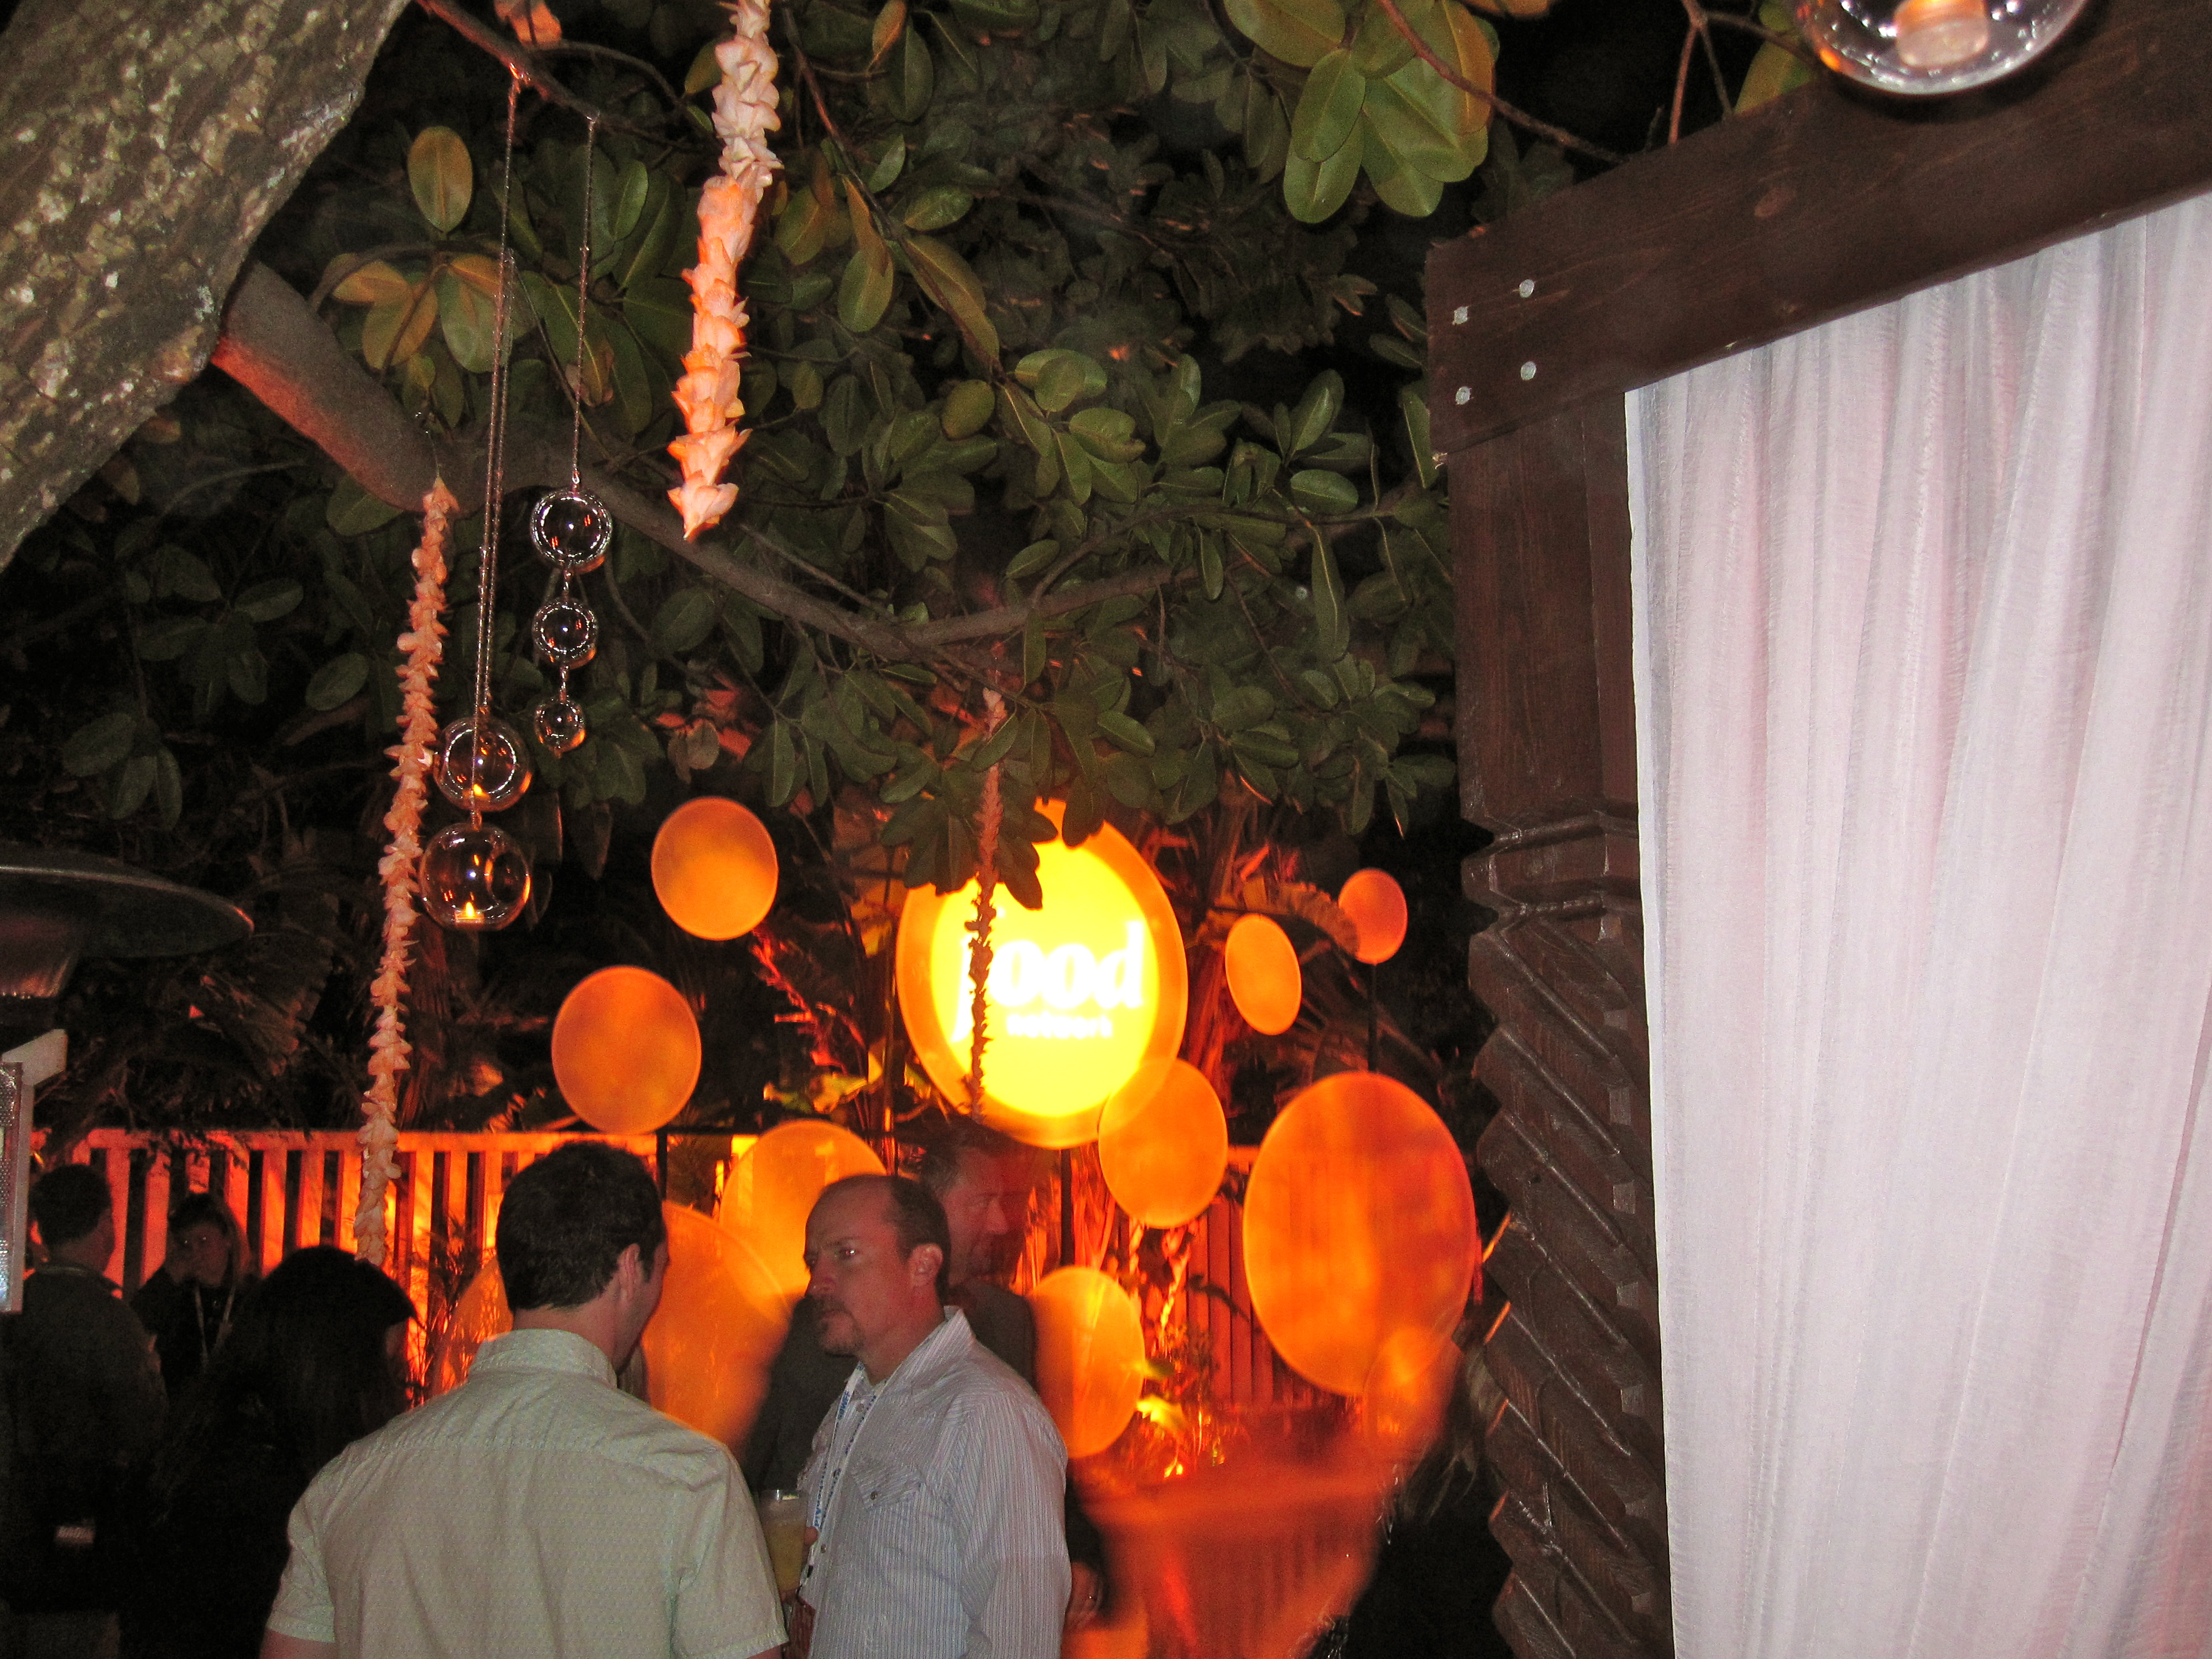 After the Burger Bash, all the Food Network personalities gathered at the Food Network party.